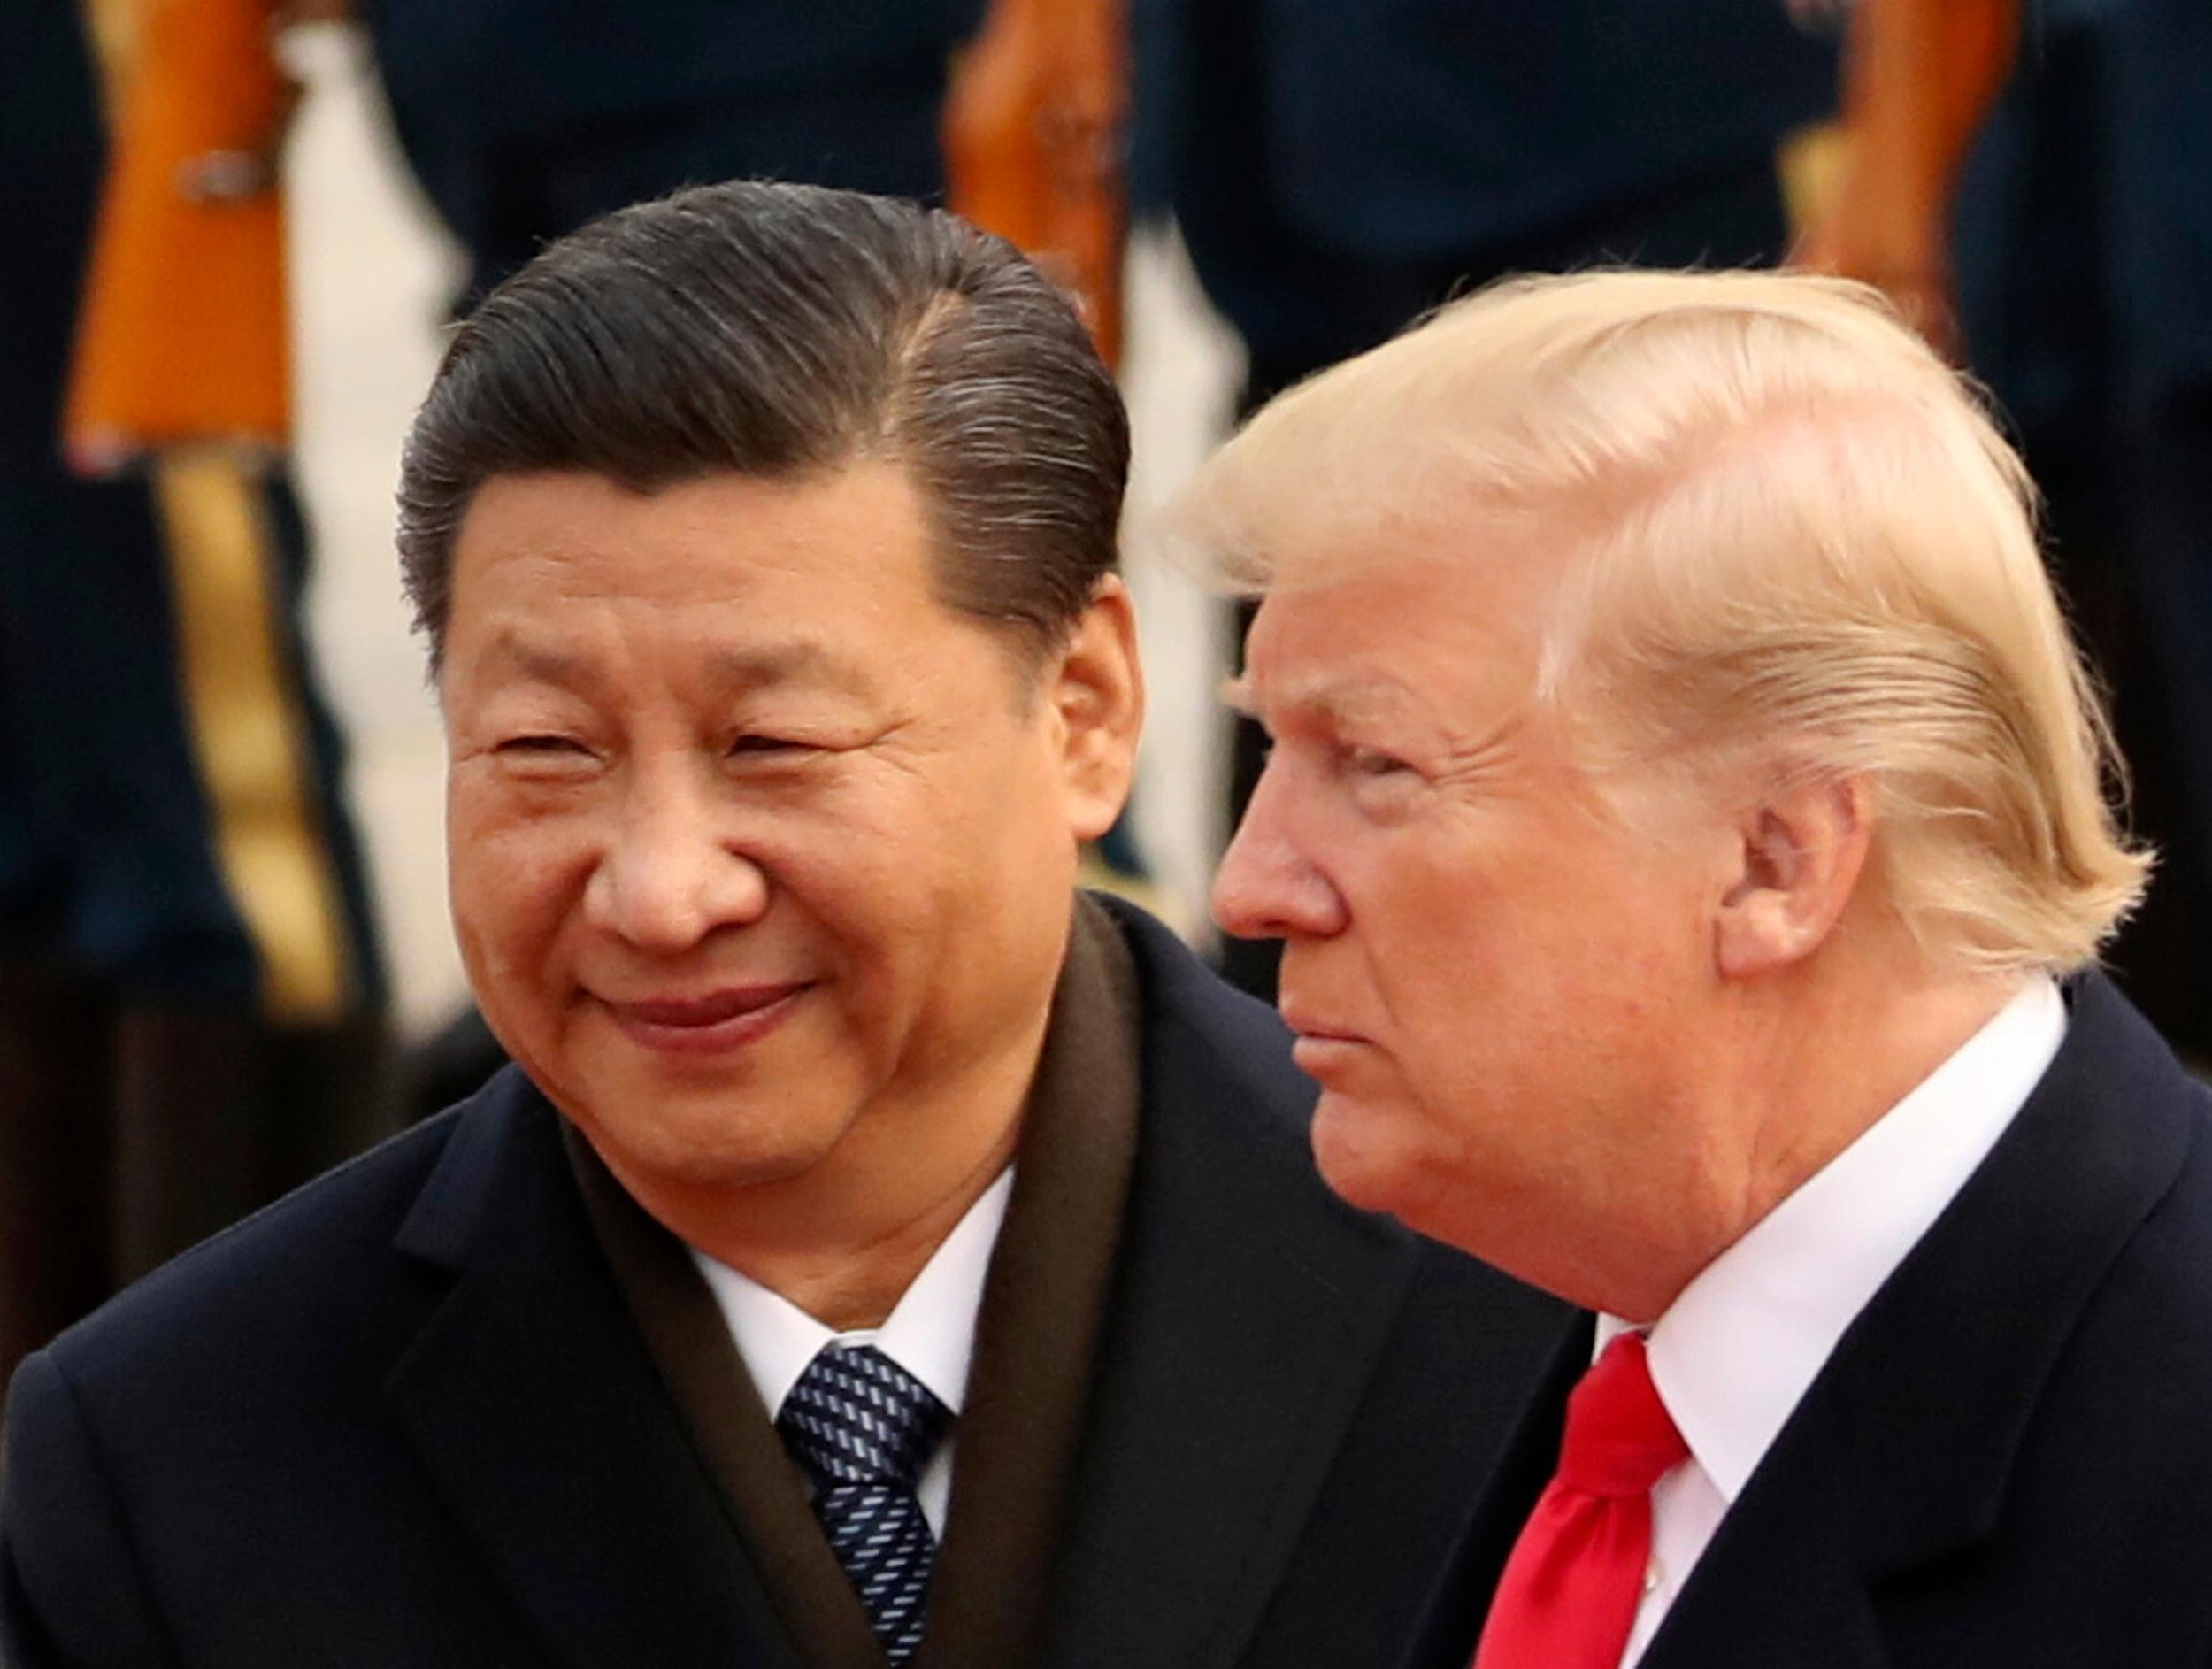 "FILE - In this Nov. 9, 2017, file photo, U.S. President Donald Trump and Chinese President Xi Jinping participate in a welcome ceremony at the Great Hall of the People in Beijing, China. Xi had an ""extremely positive"" phone conversation with Trump about trade and other issues, the foreign ministry said Friday, Nov. 2, 2018. (AP Photo/Andrew Harnik, File)"